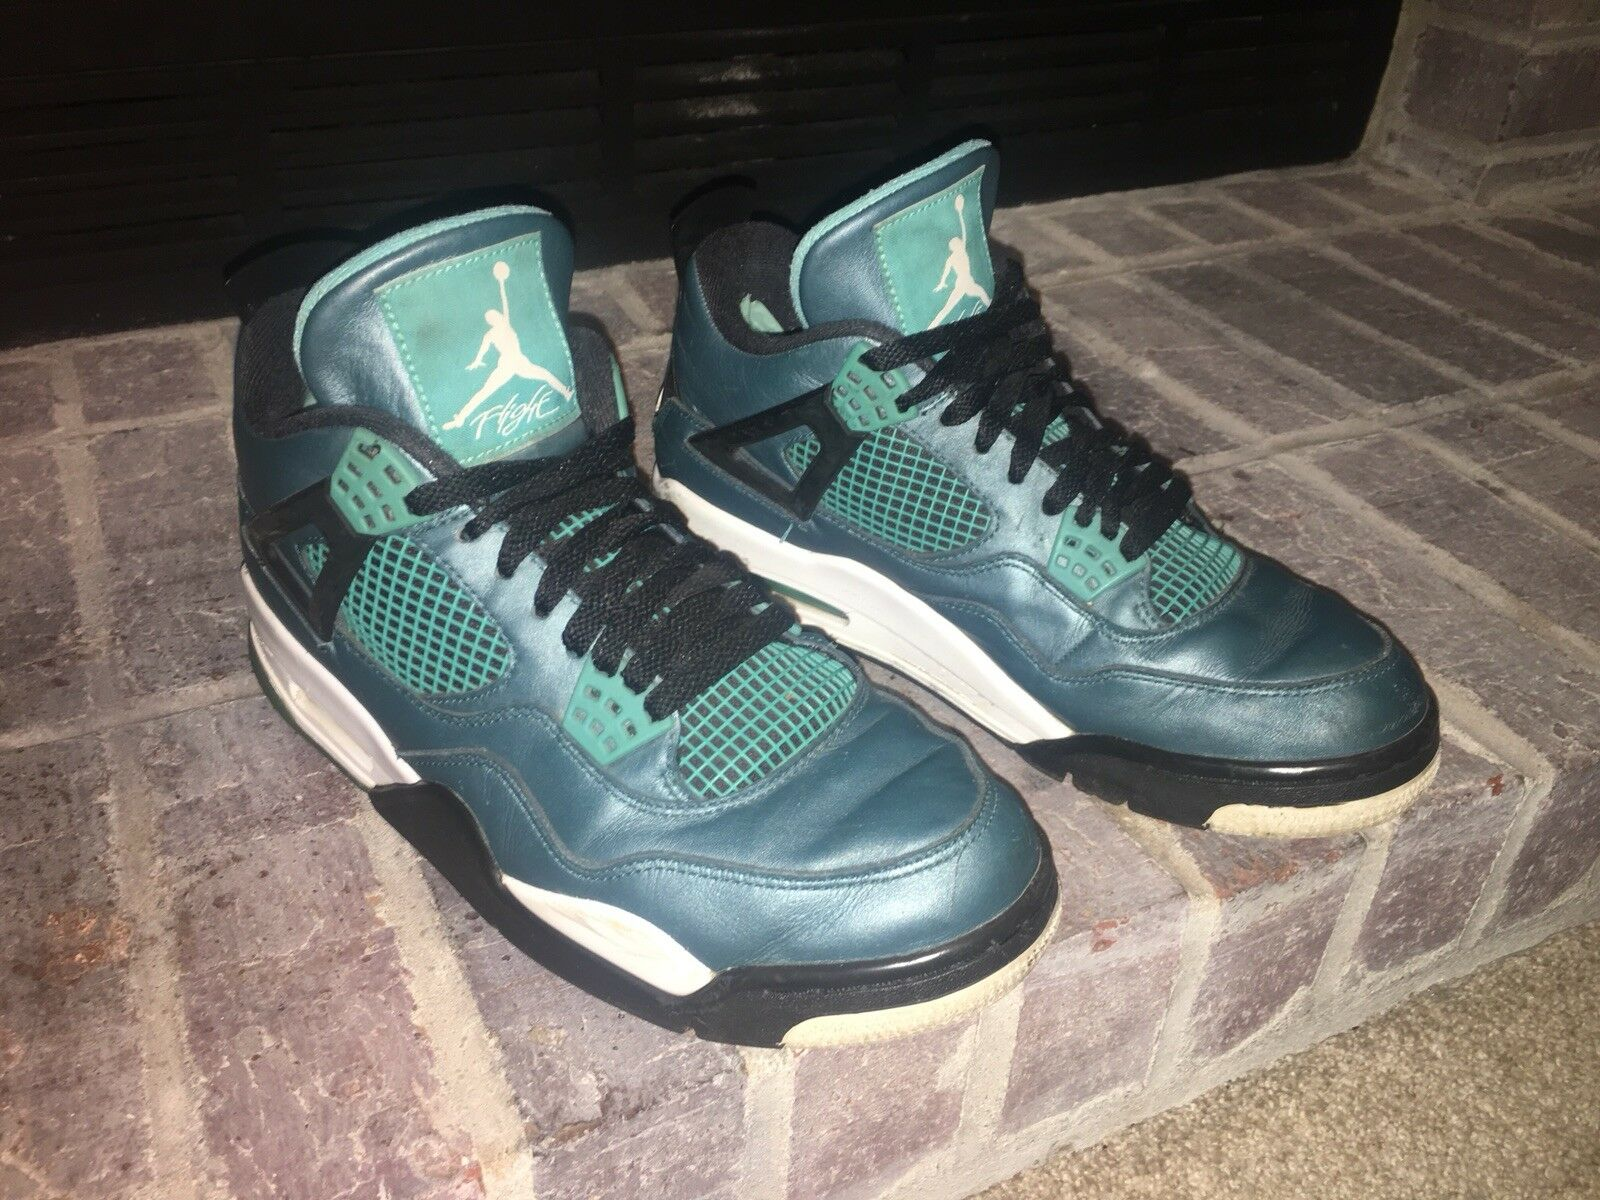 Nike Air Jordan 4 Retro Teal size 9.5 The most popular shoes for men and women